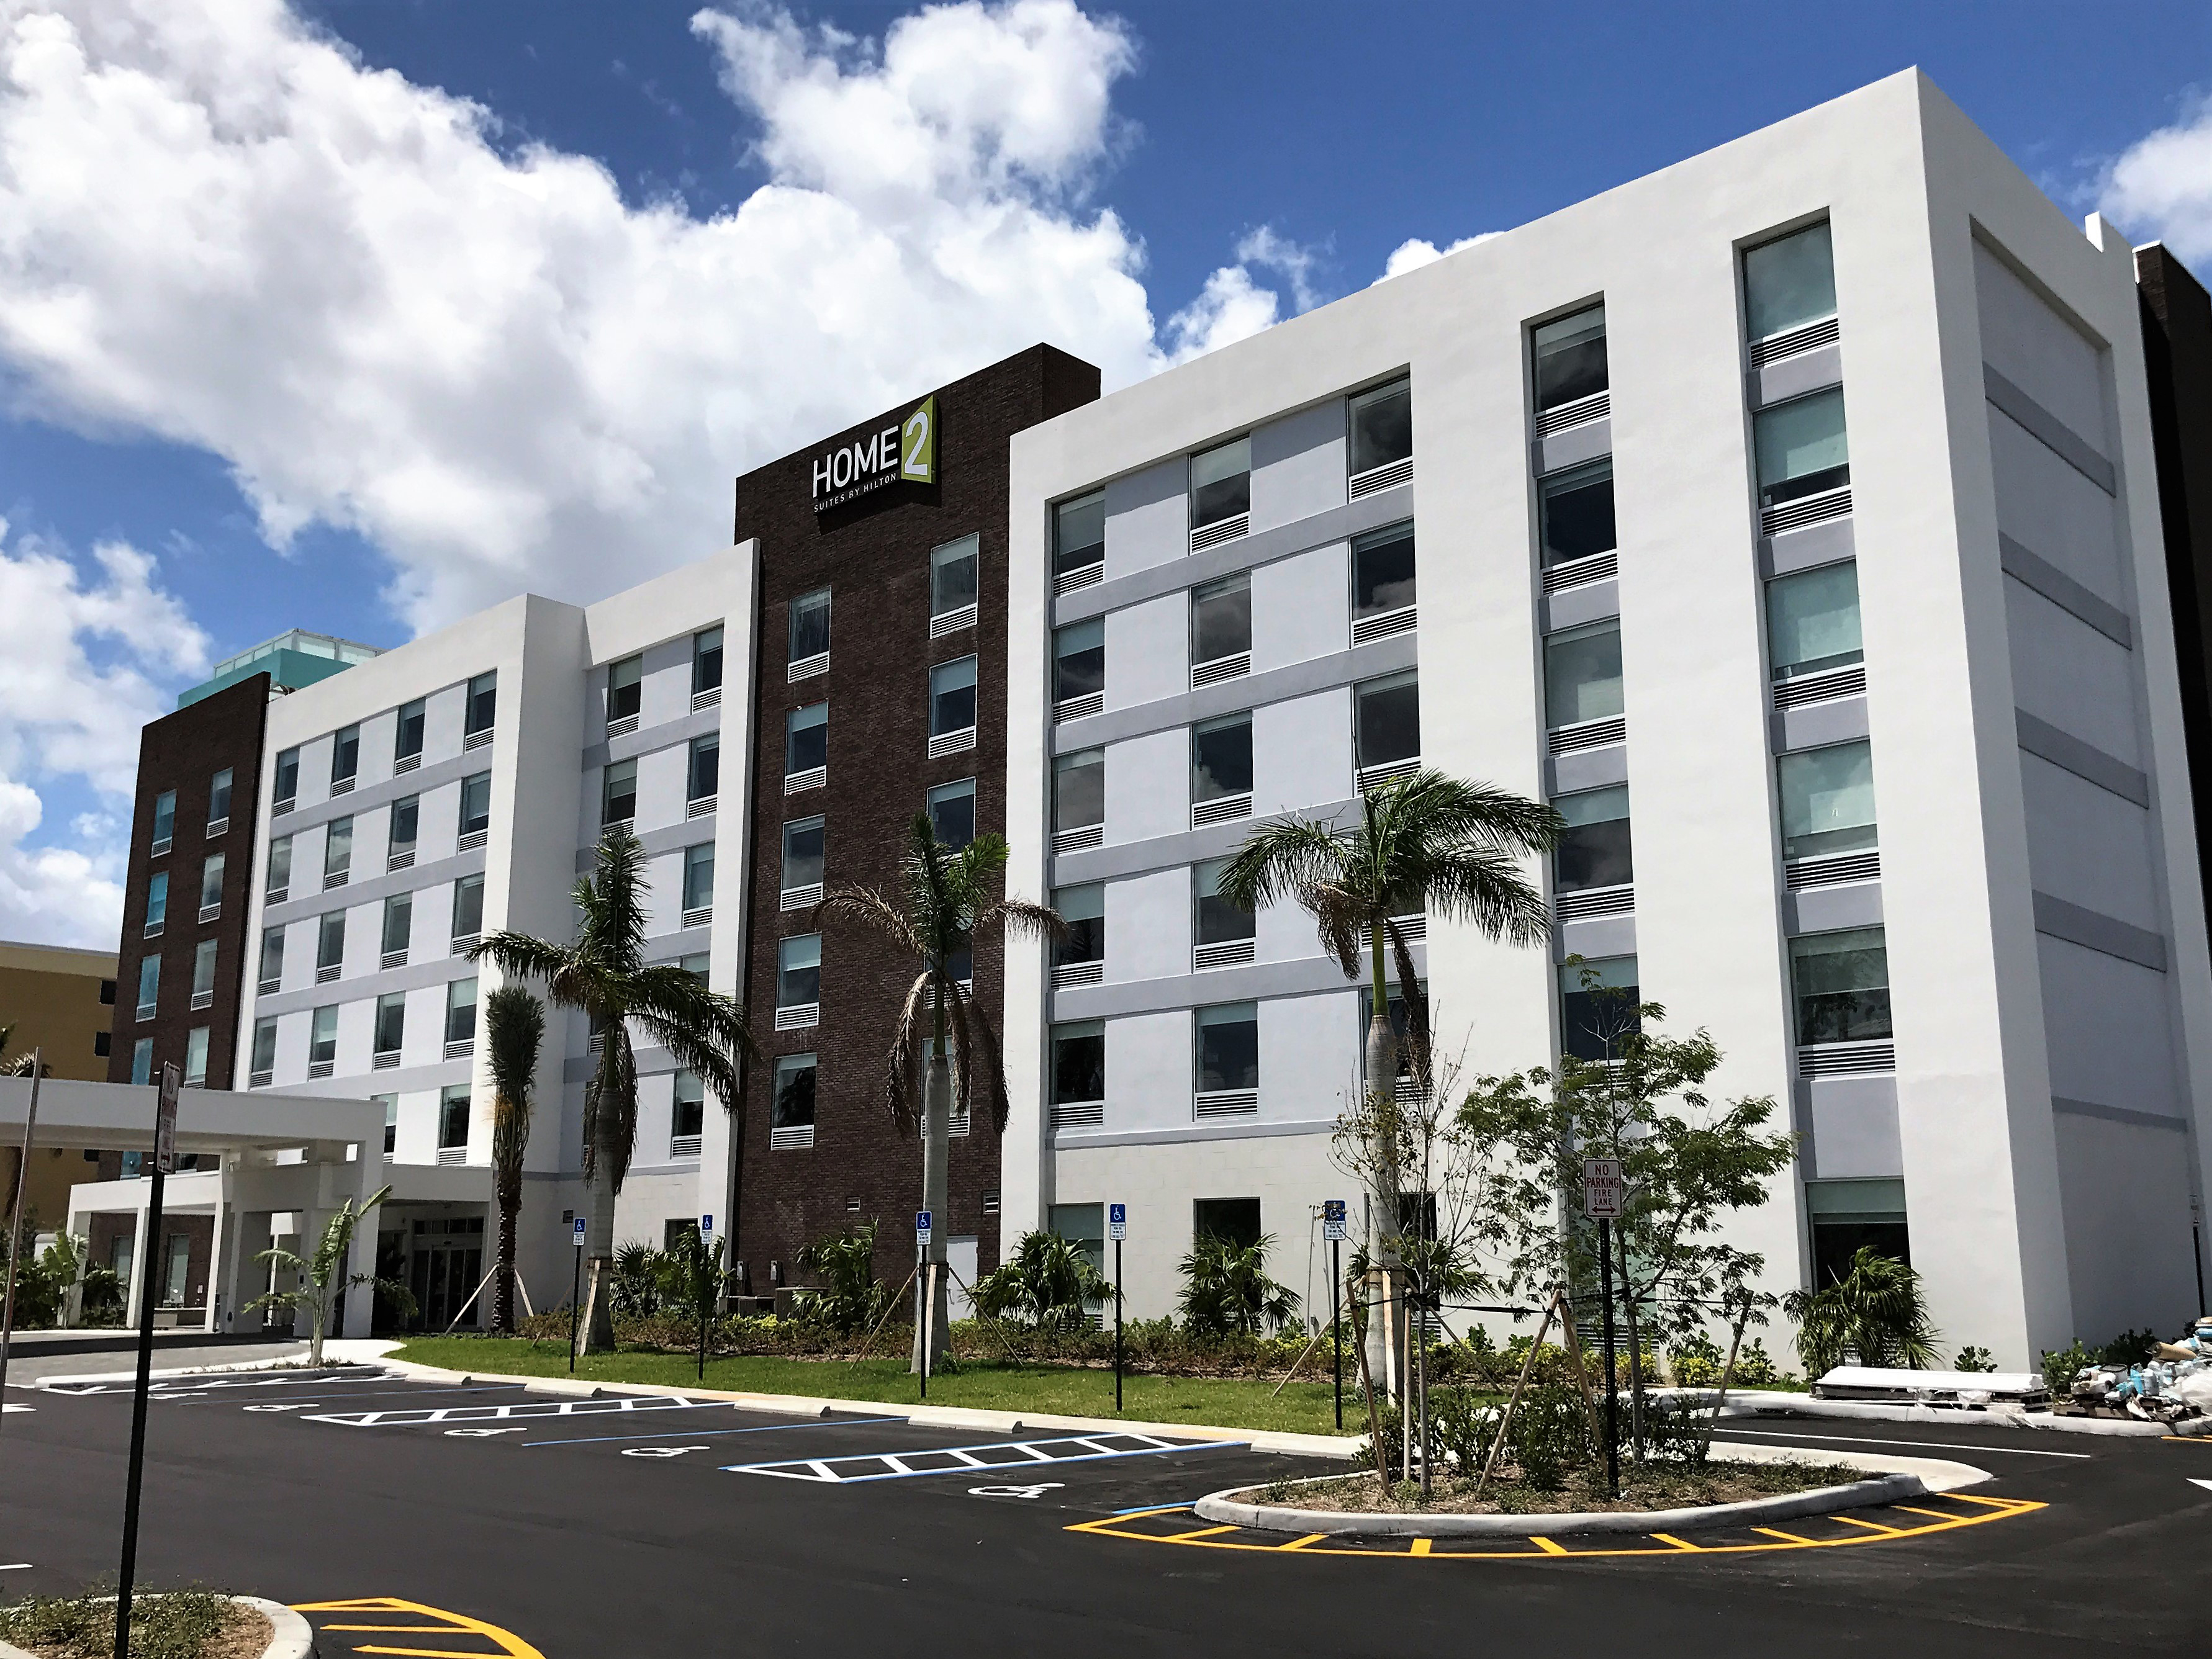 Home2 Suites By Hilton Ft Lauderdale Airport Cruise Port Opens Newest Hotel In Dania Beach